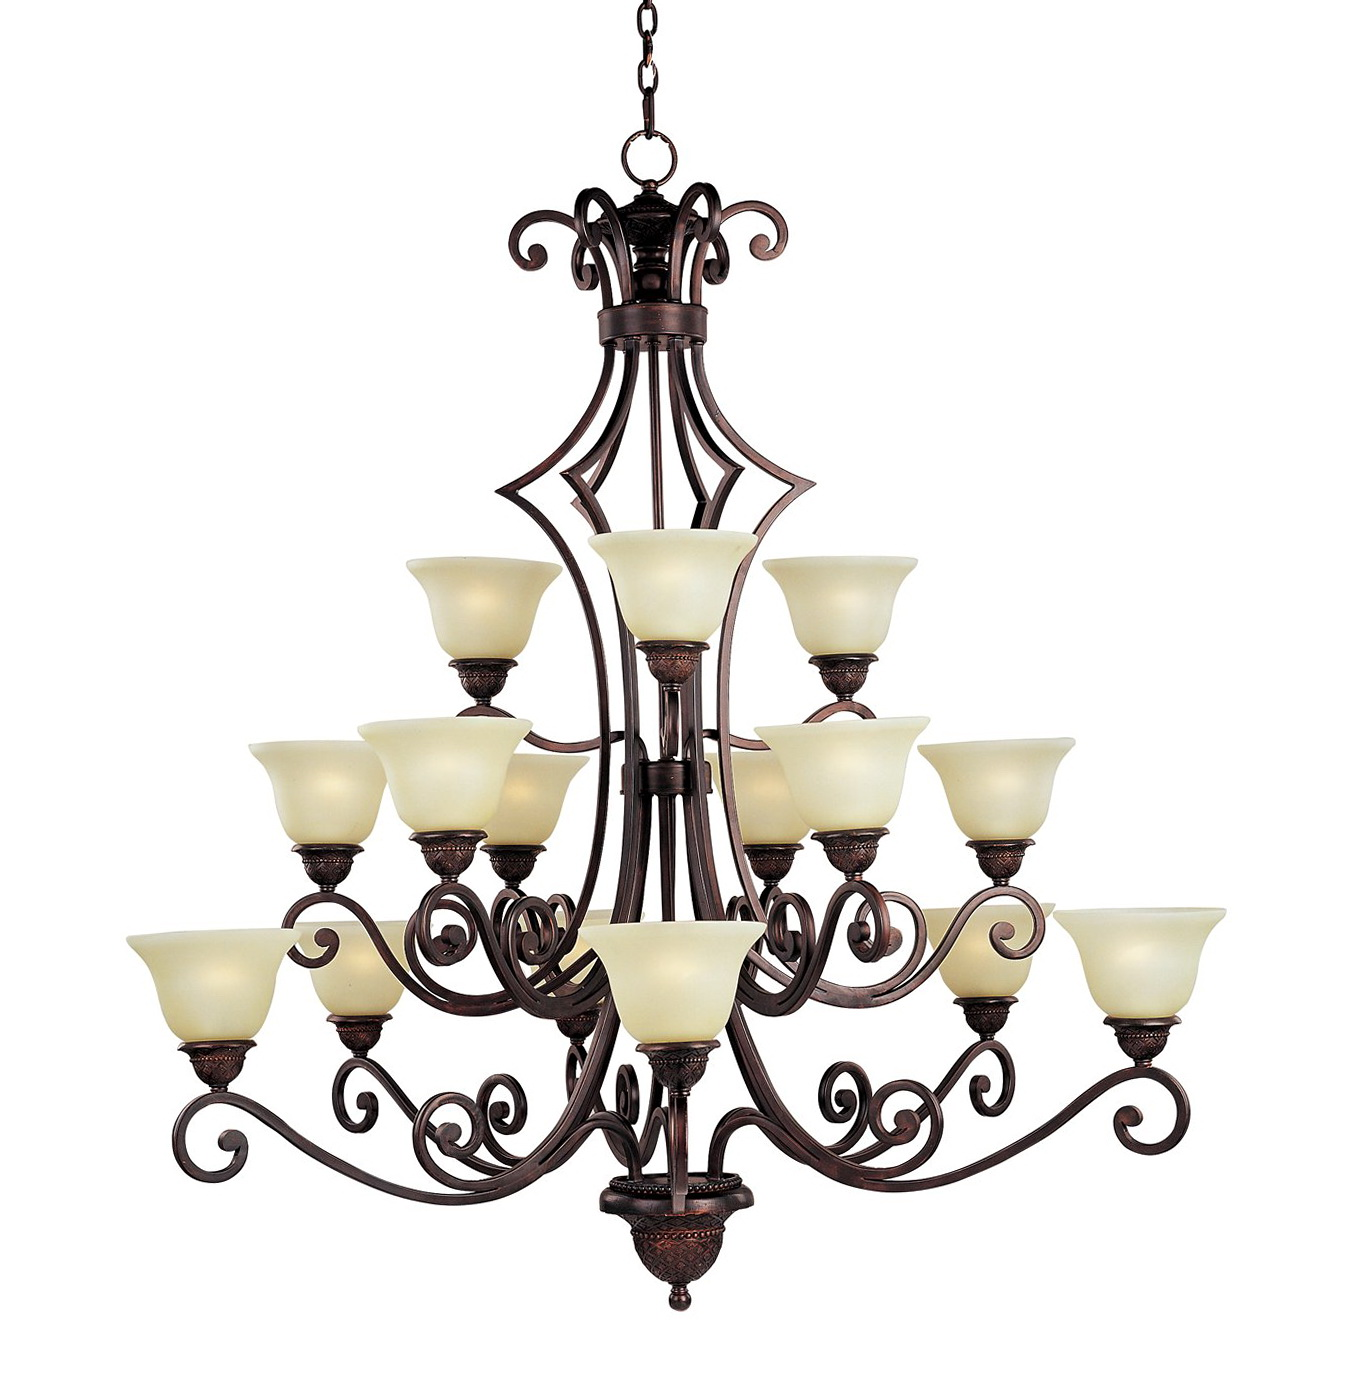 Large Oil Rubbed Bronze Chandelier